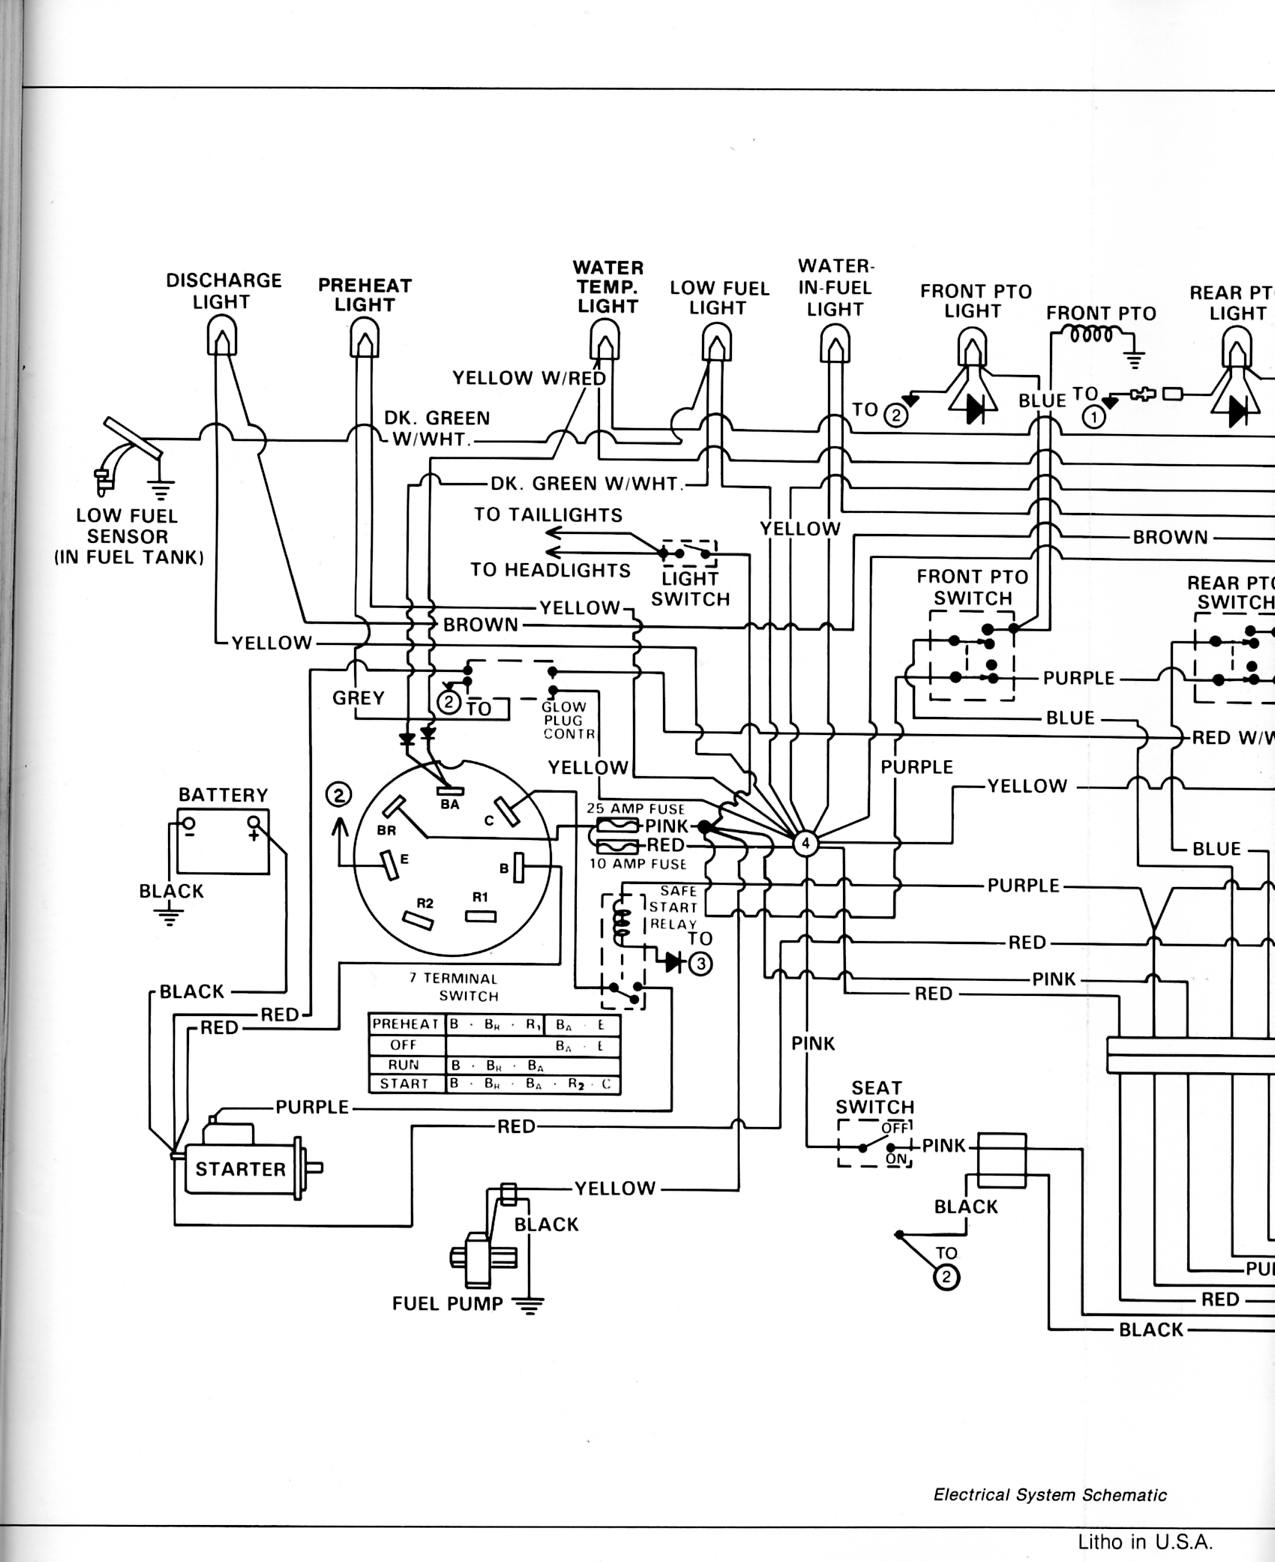 Marvelous Case Tractor 570 Wire Diagram Wiring Diagram Data Schema Wiring Cloud Ymoonsalvmohammedshrineorg